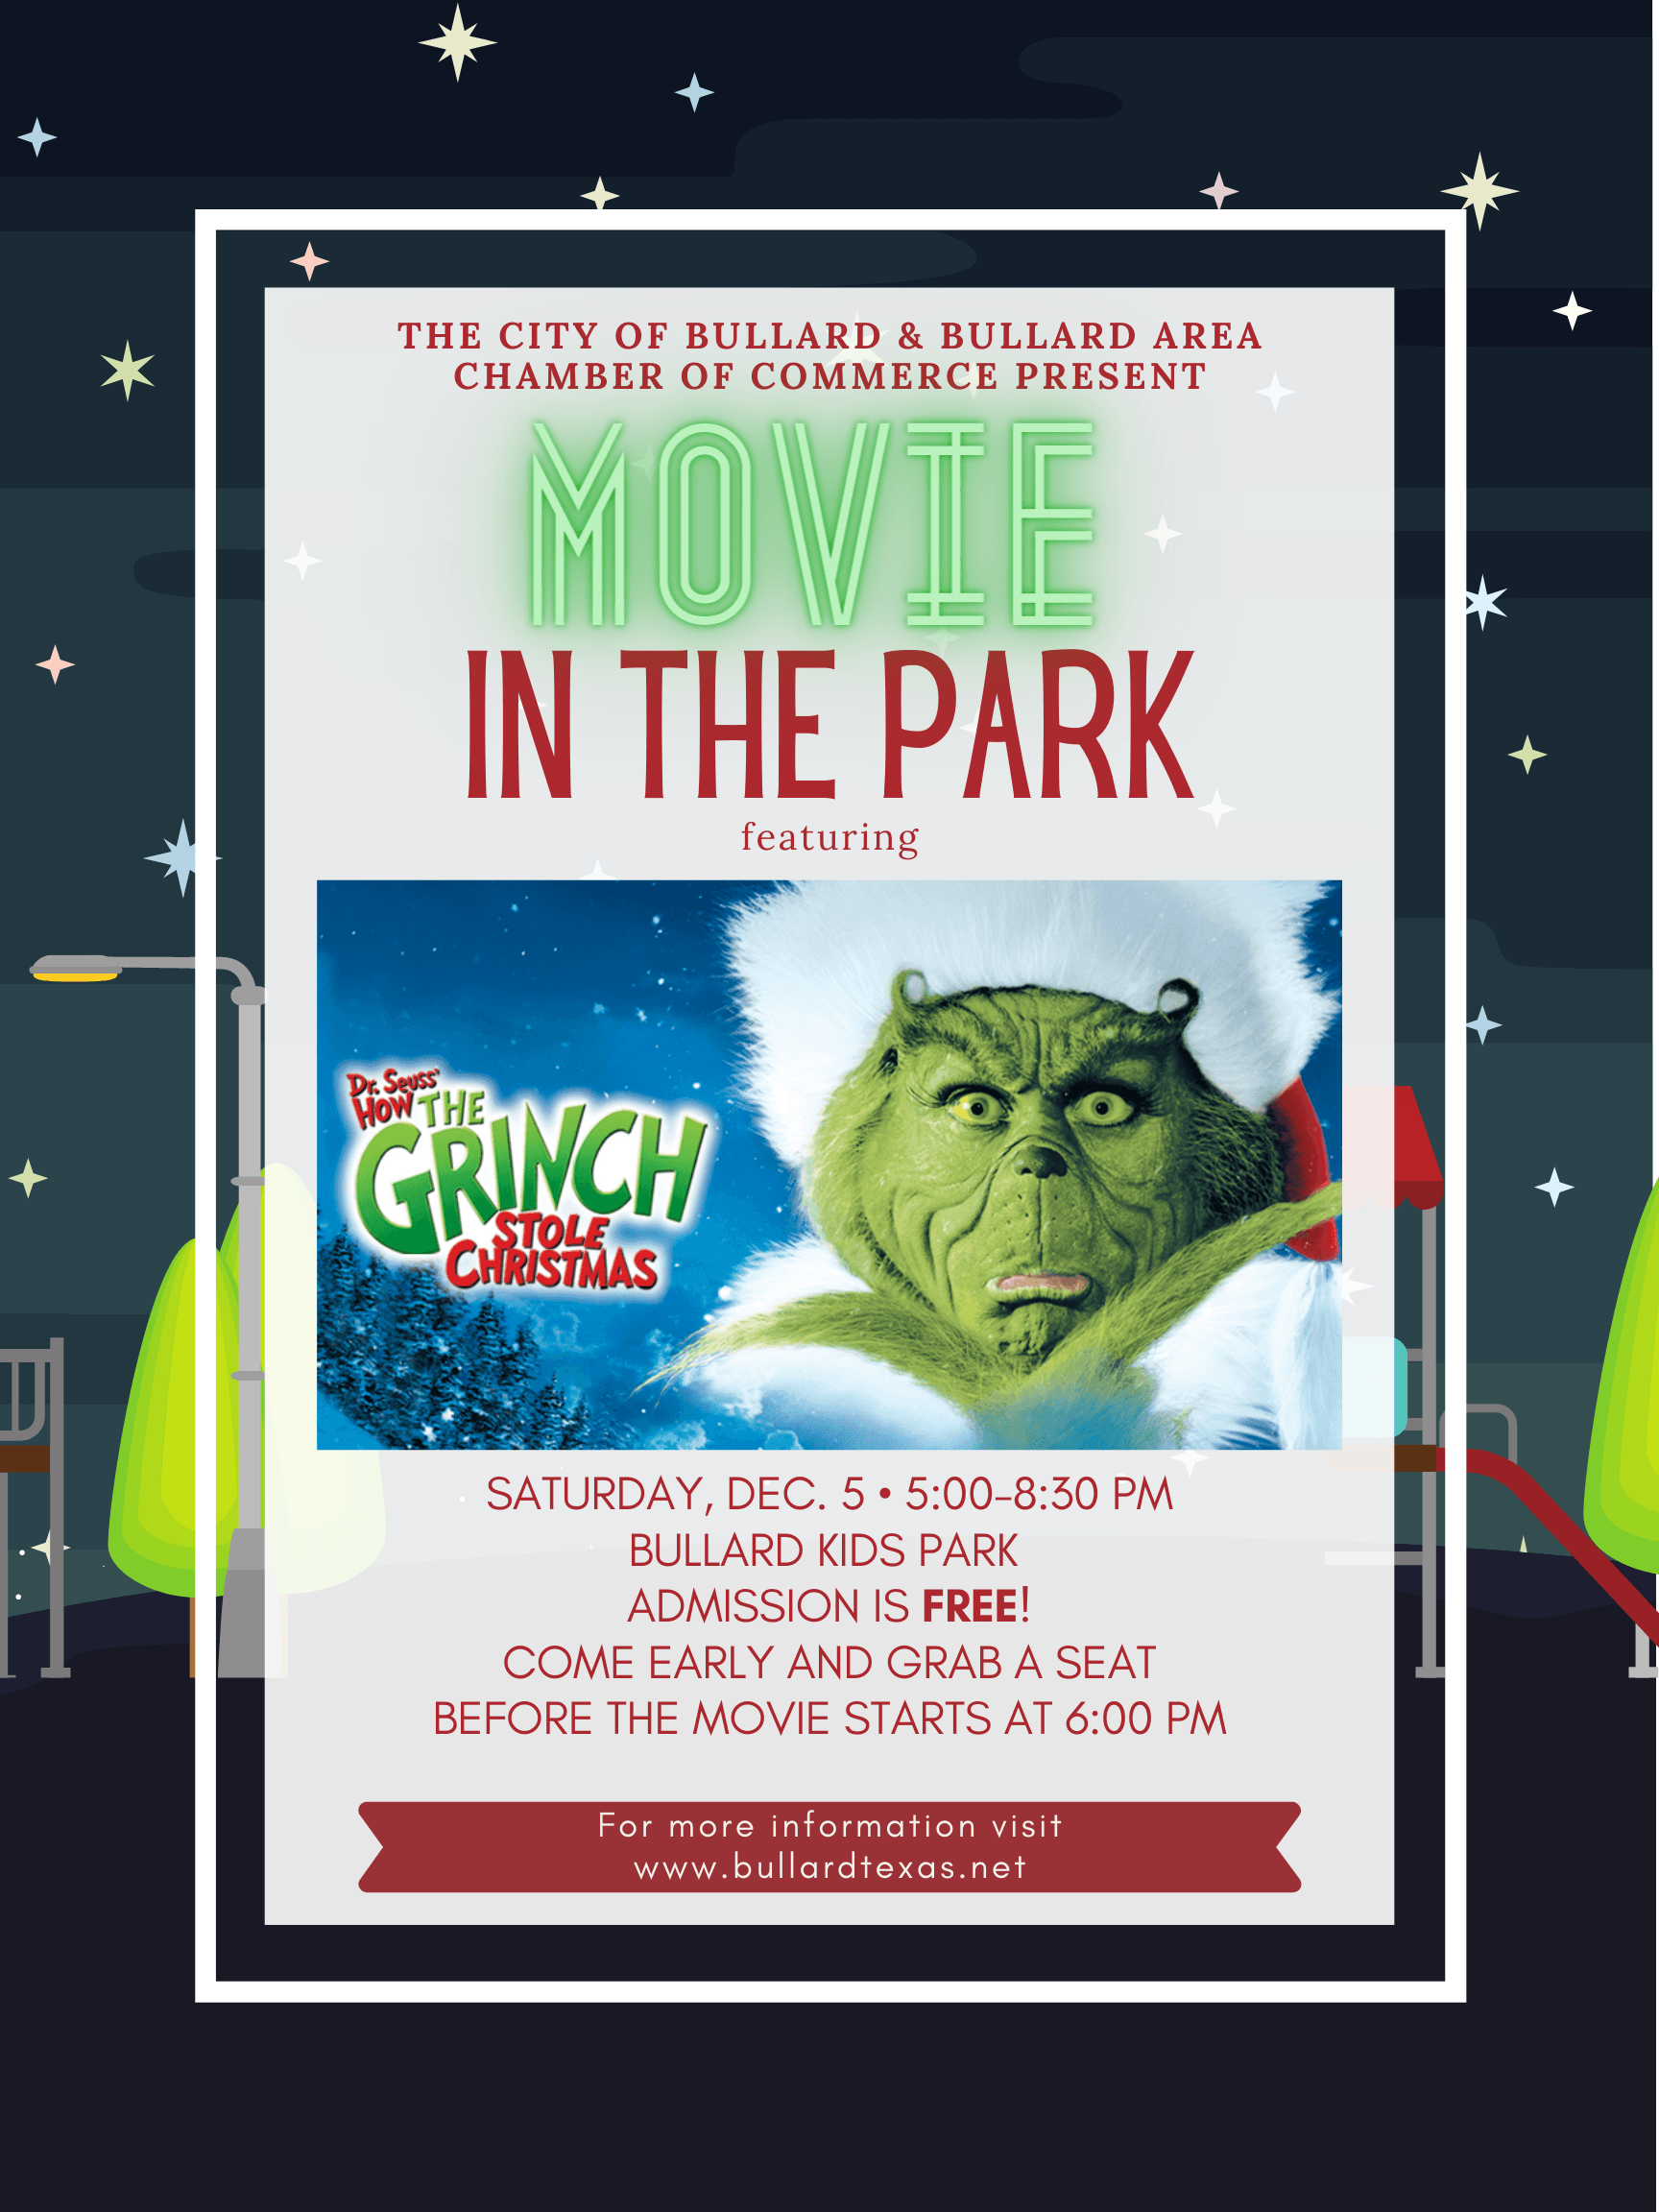 2020 Christmas Kickoff Movie in the park